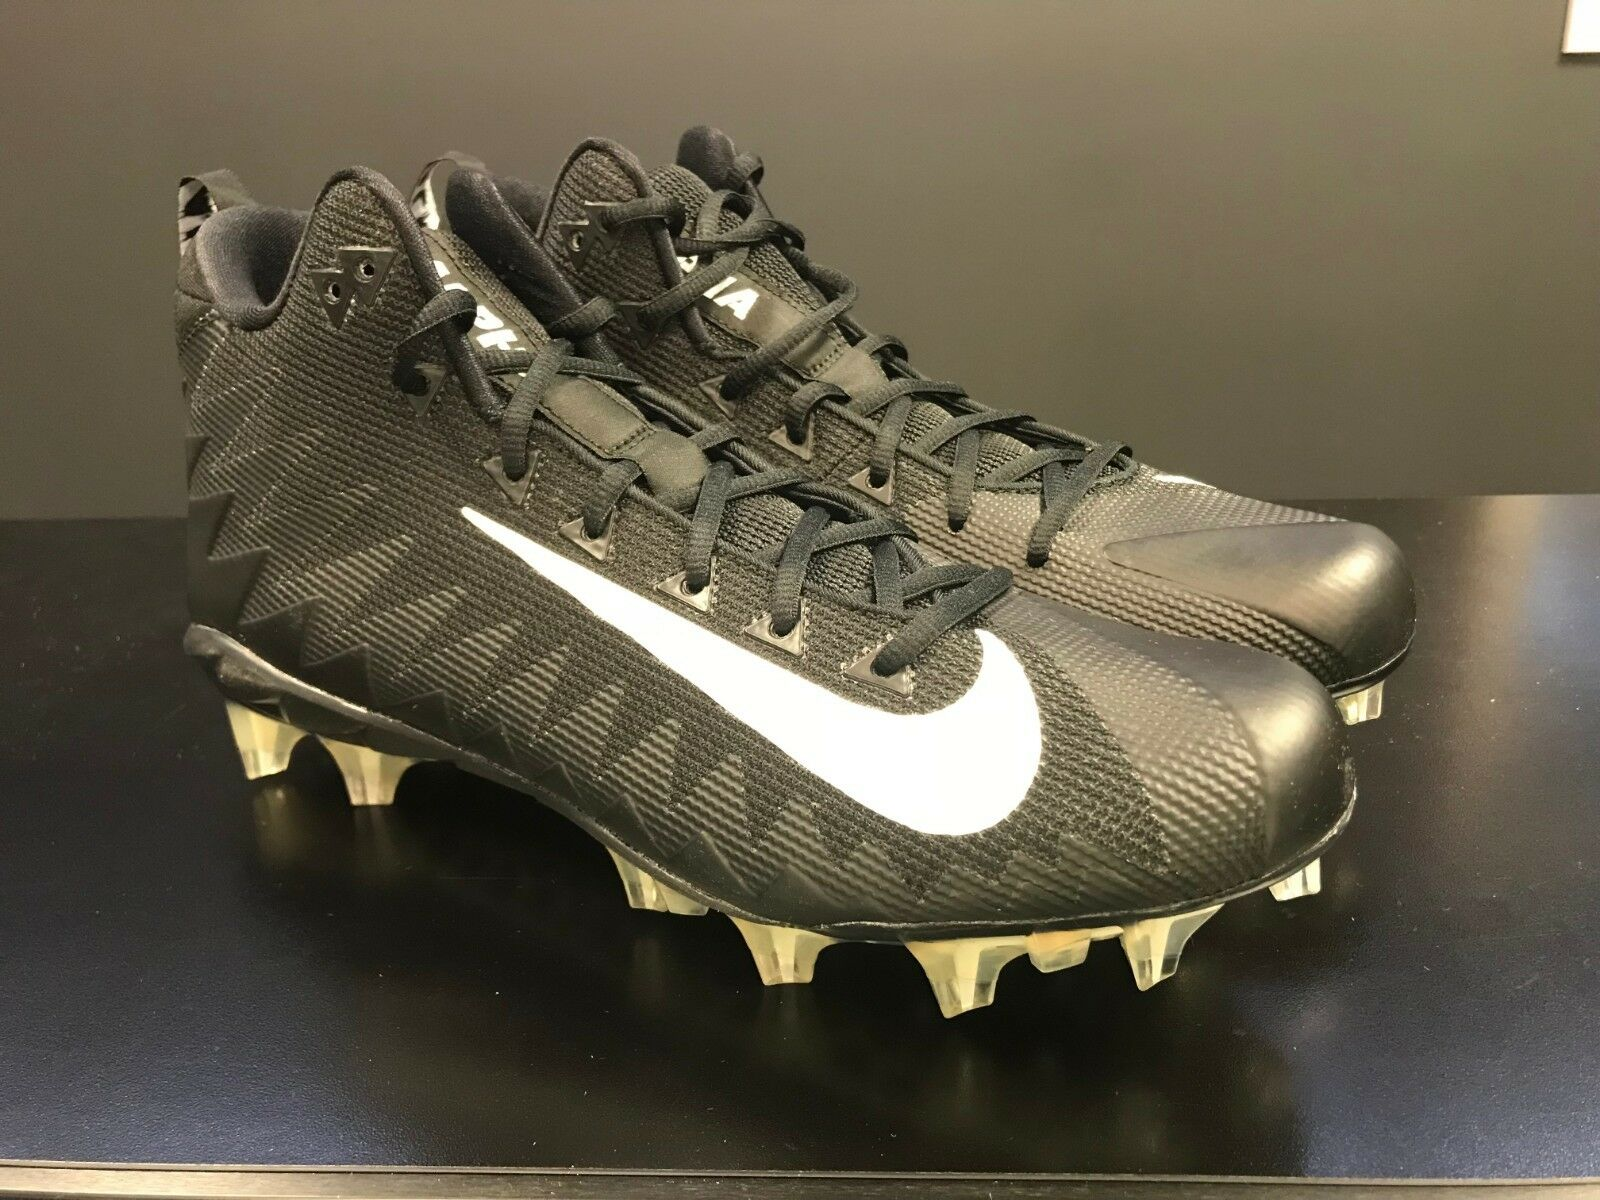 Nike Alpha Menace Pro Mid TD Football Cleats Black 915414-010, Men Size 14